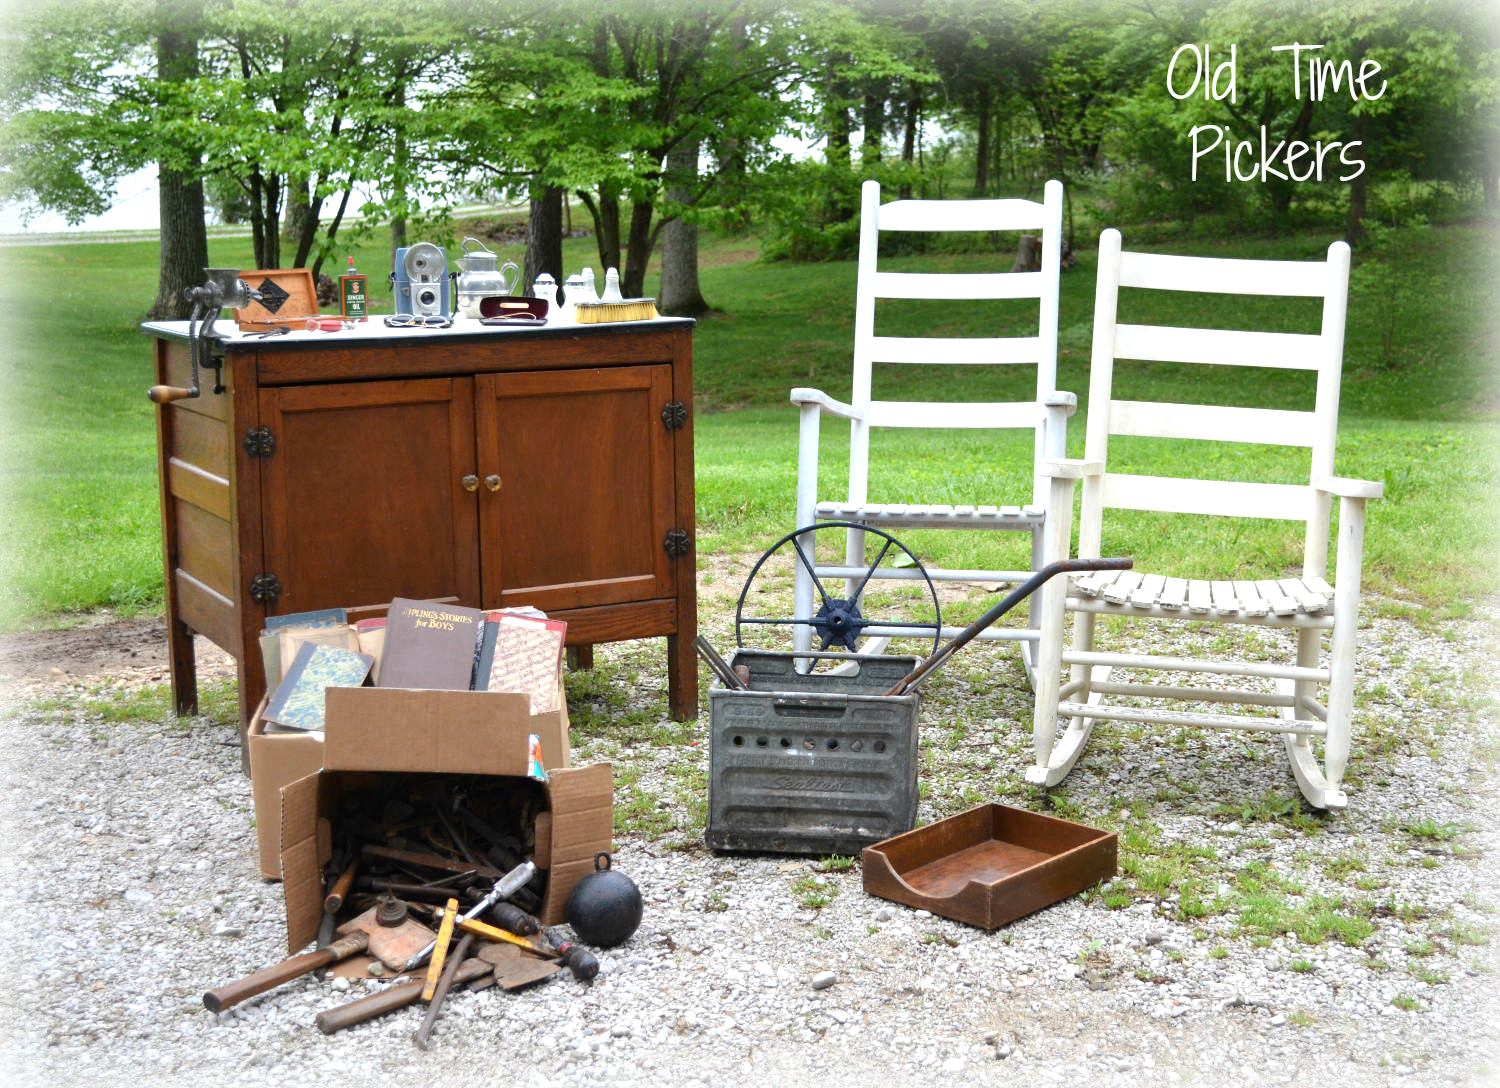 *OldTimePickers* - decor and design from pickin cool finds